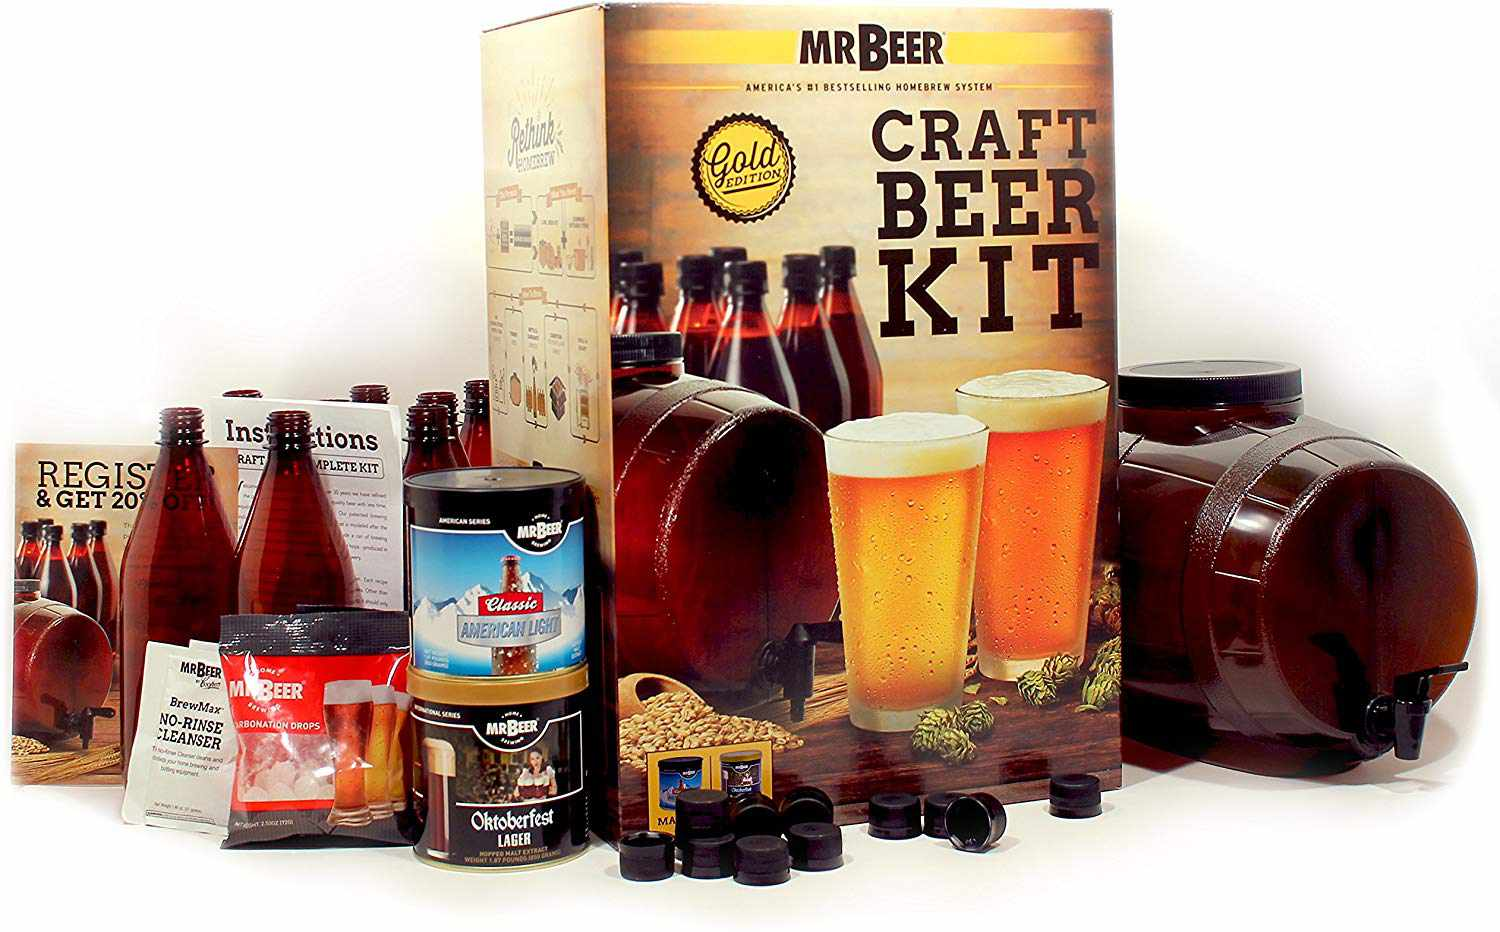 Mr. Beer Premium Gold Edition 2 Gallon Craft Beer Making Kit